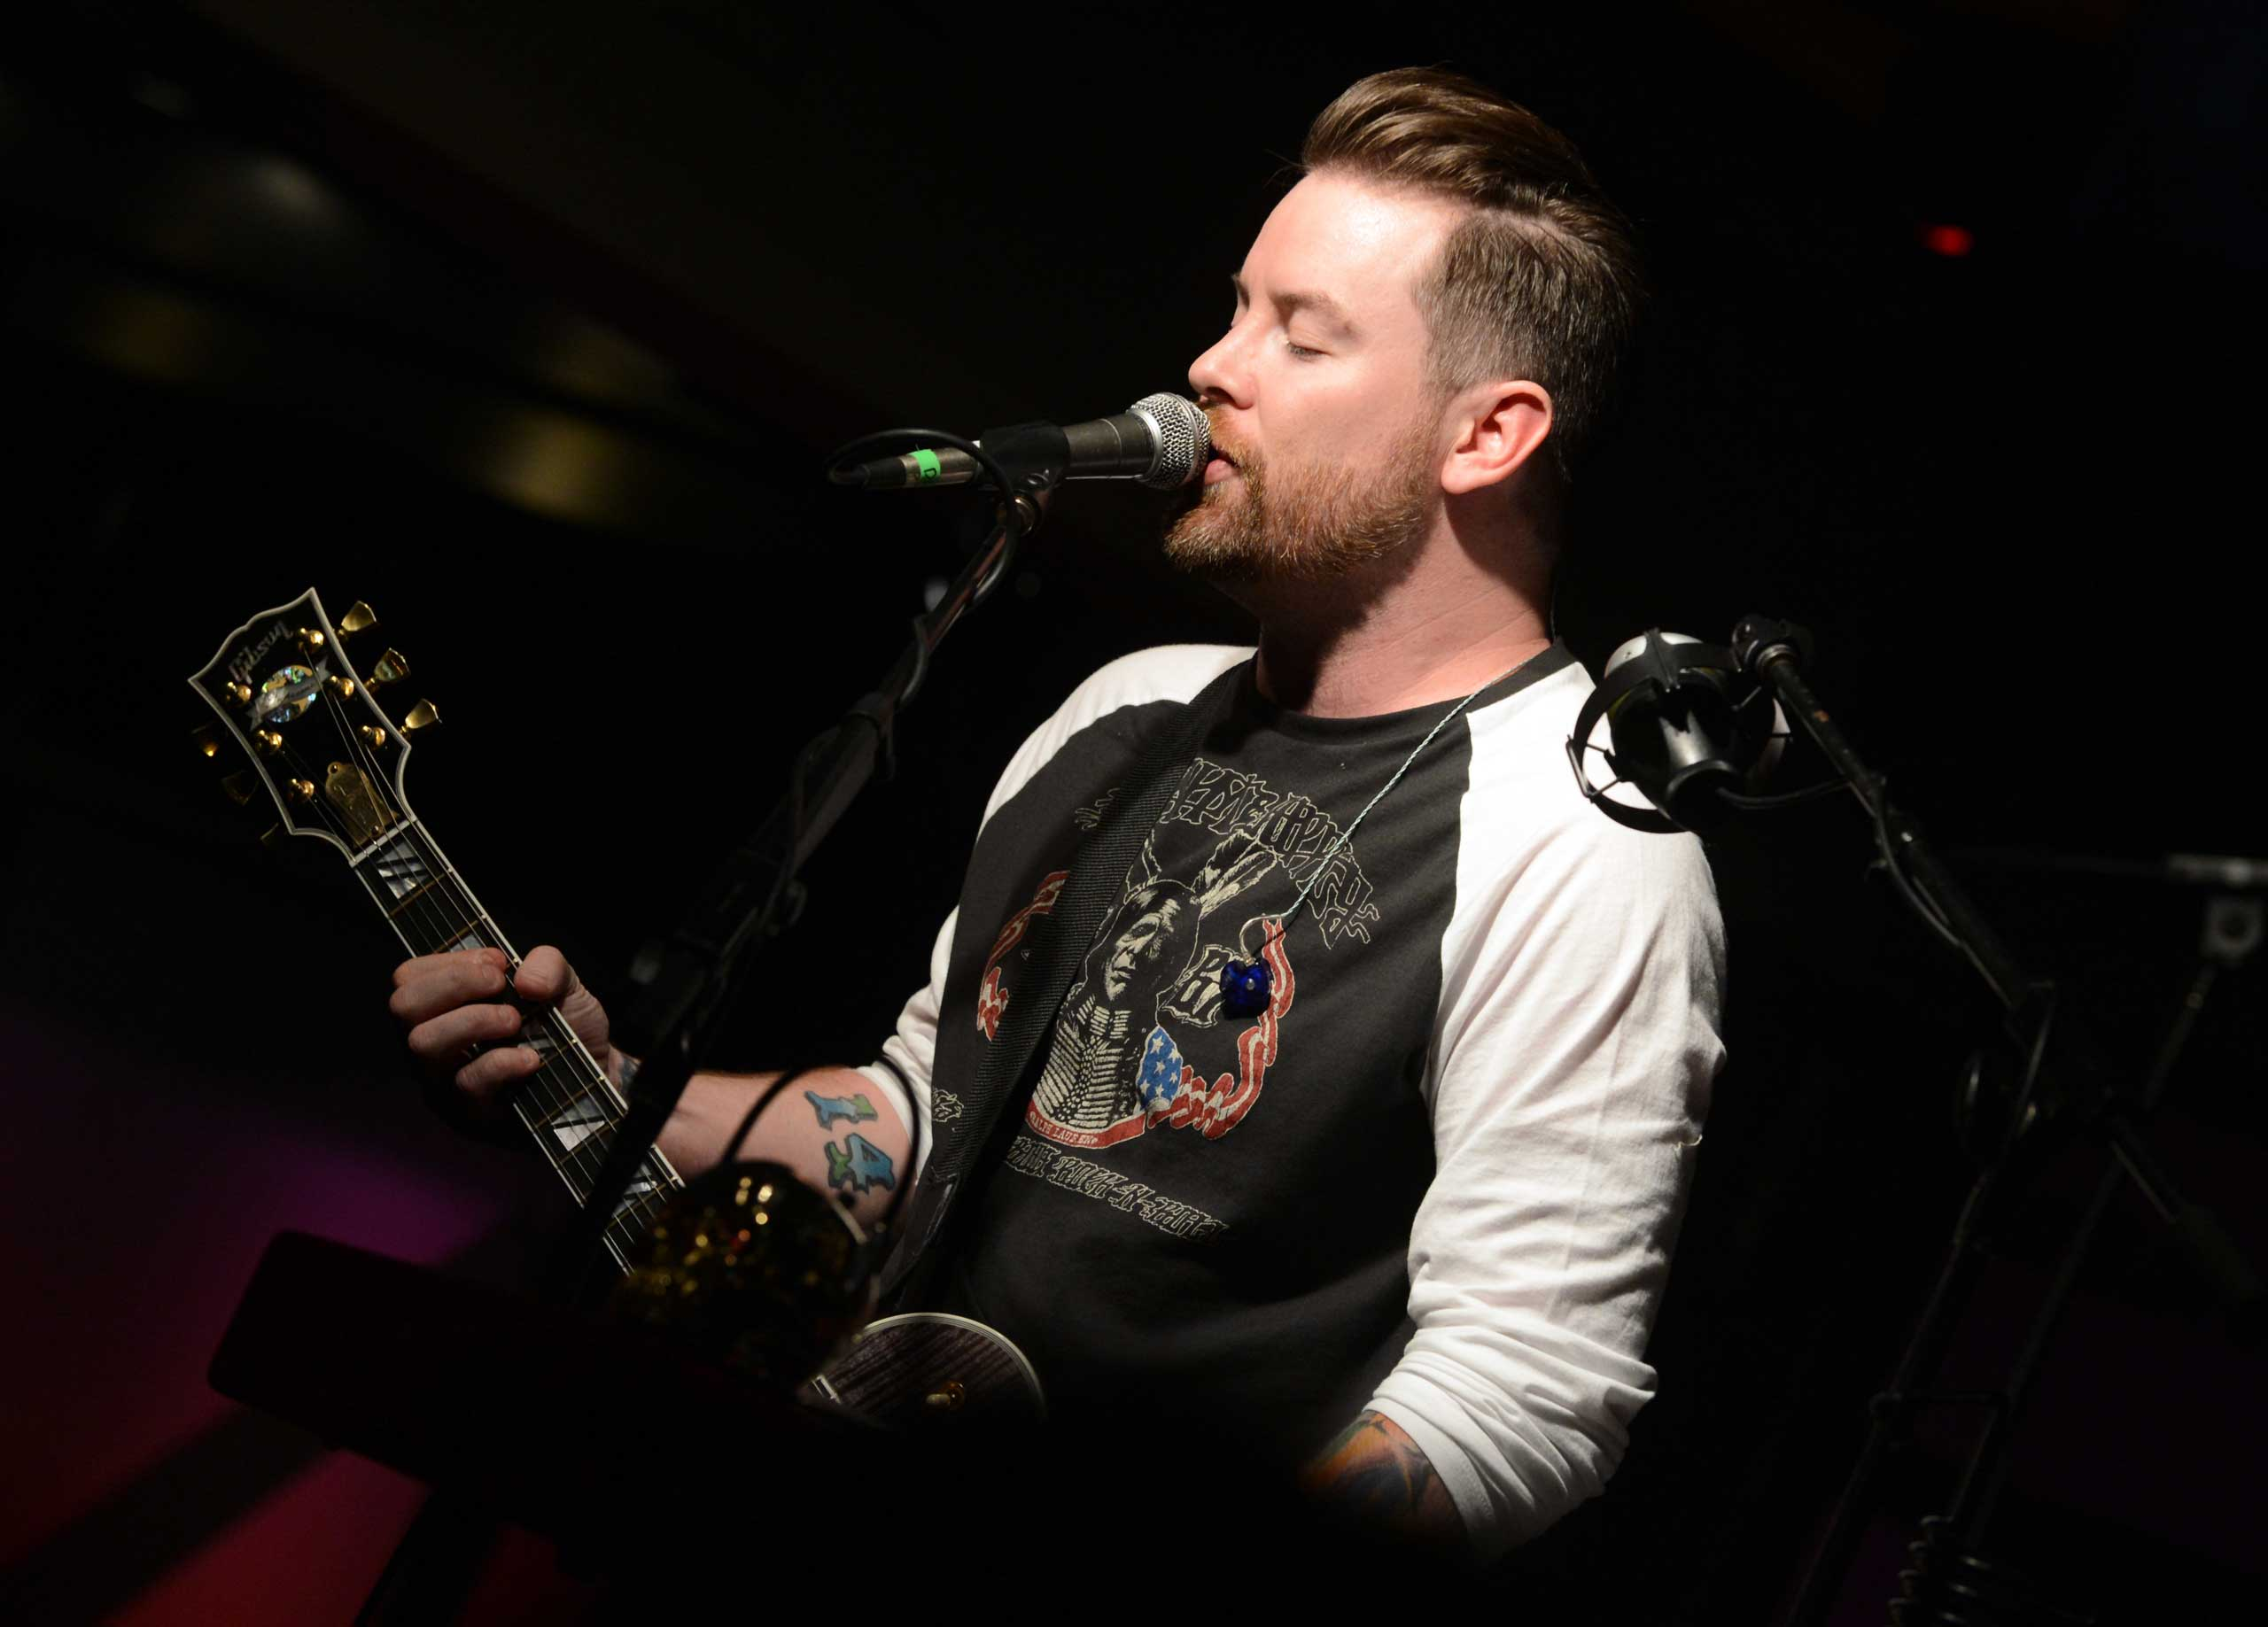 <b>David Cook</b>, season 7 winner, performs at the Soles4Souls charity concert, sponsored by Barefoot Wine &amp; Bubbly at the Bridge Building in Nashville on April 1, 2014.